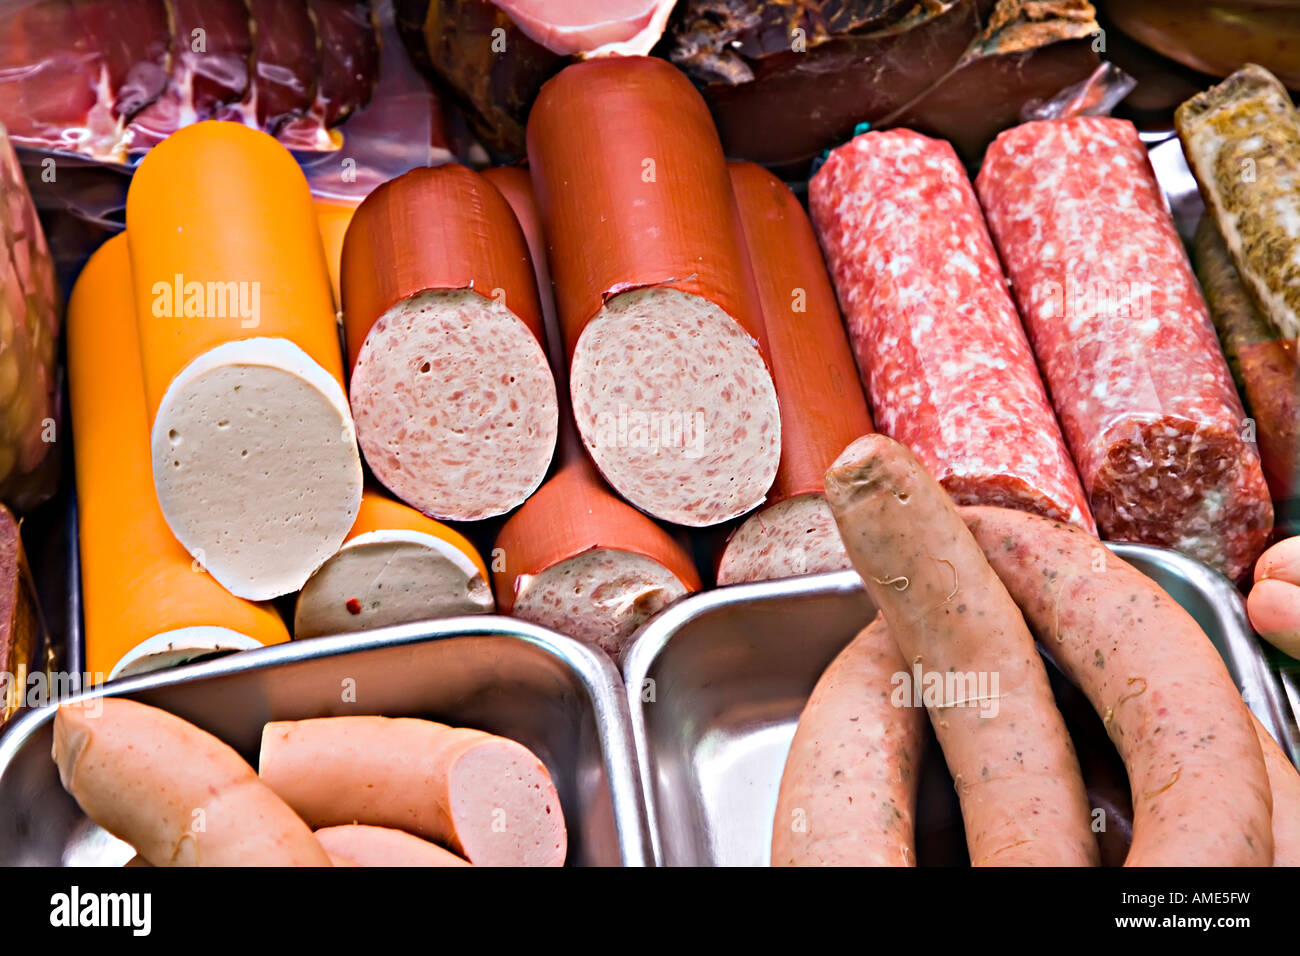 Smoked meat German sausage and salami on sale in butcher's